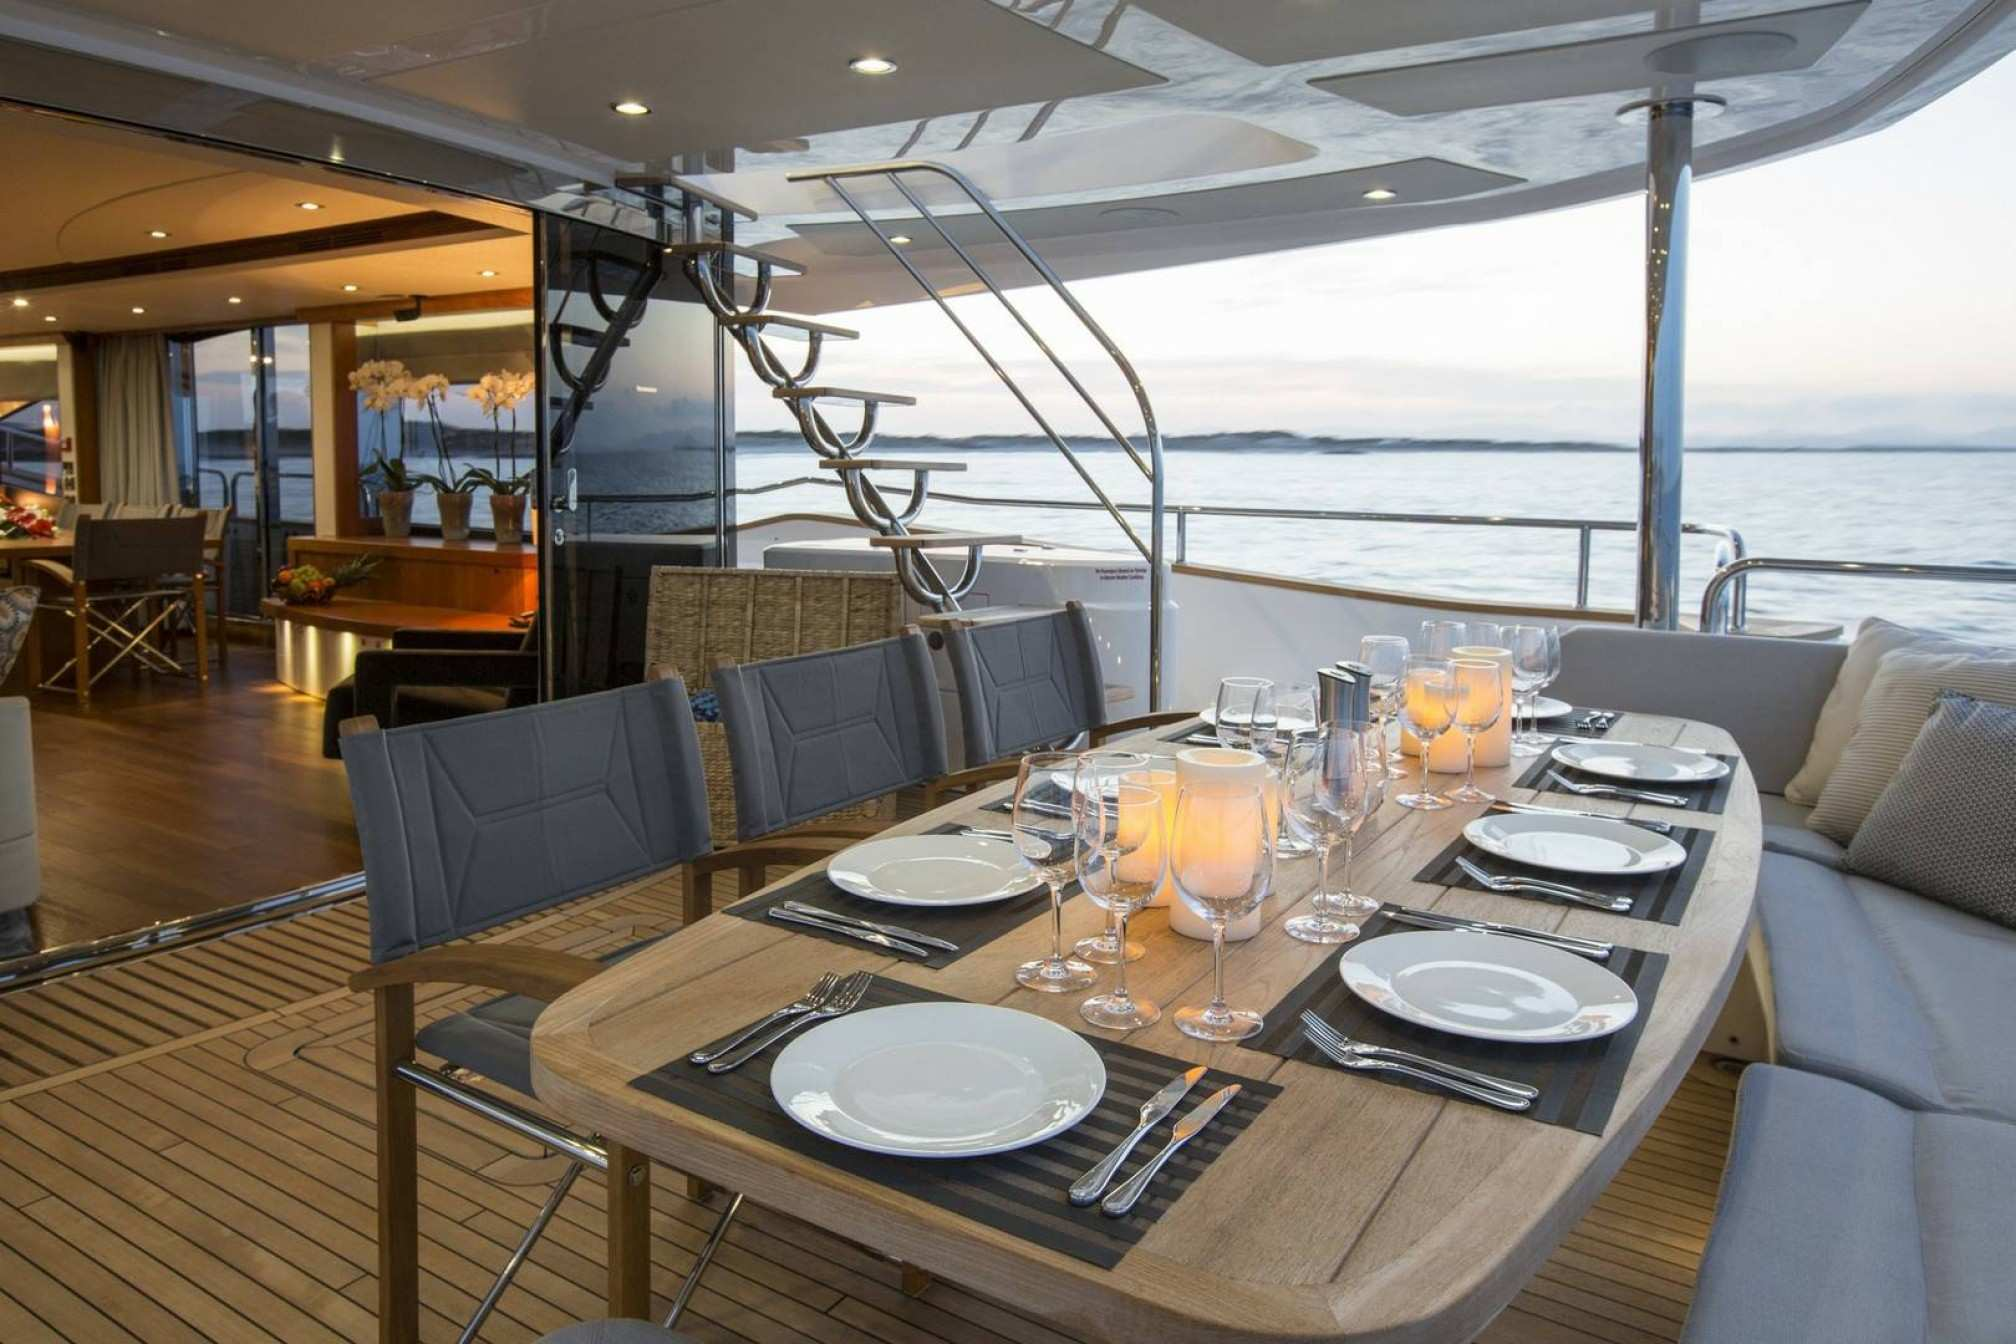 Sunseeker 80 charter yacht outdoors